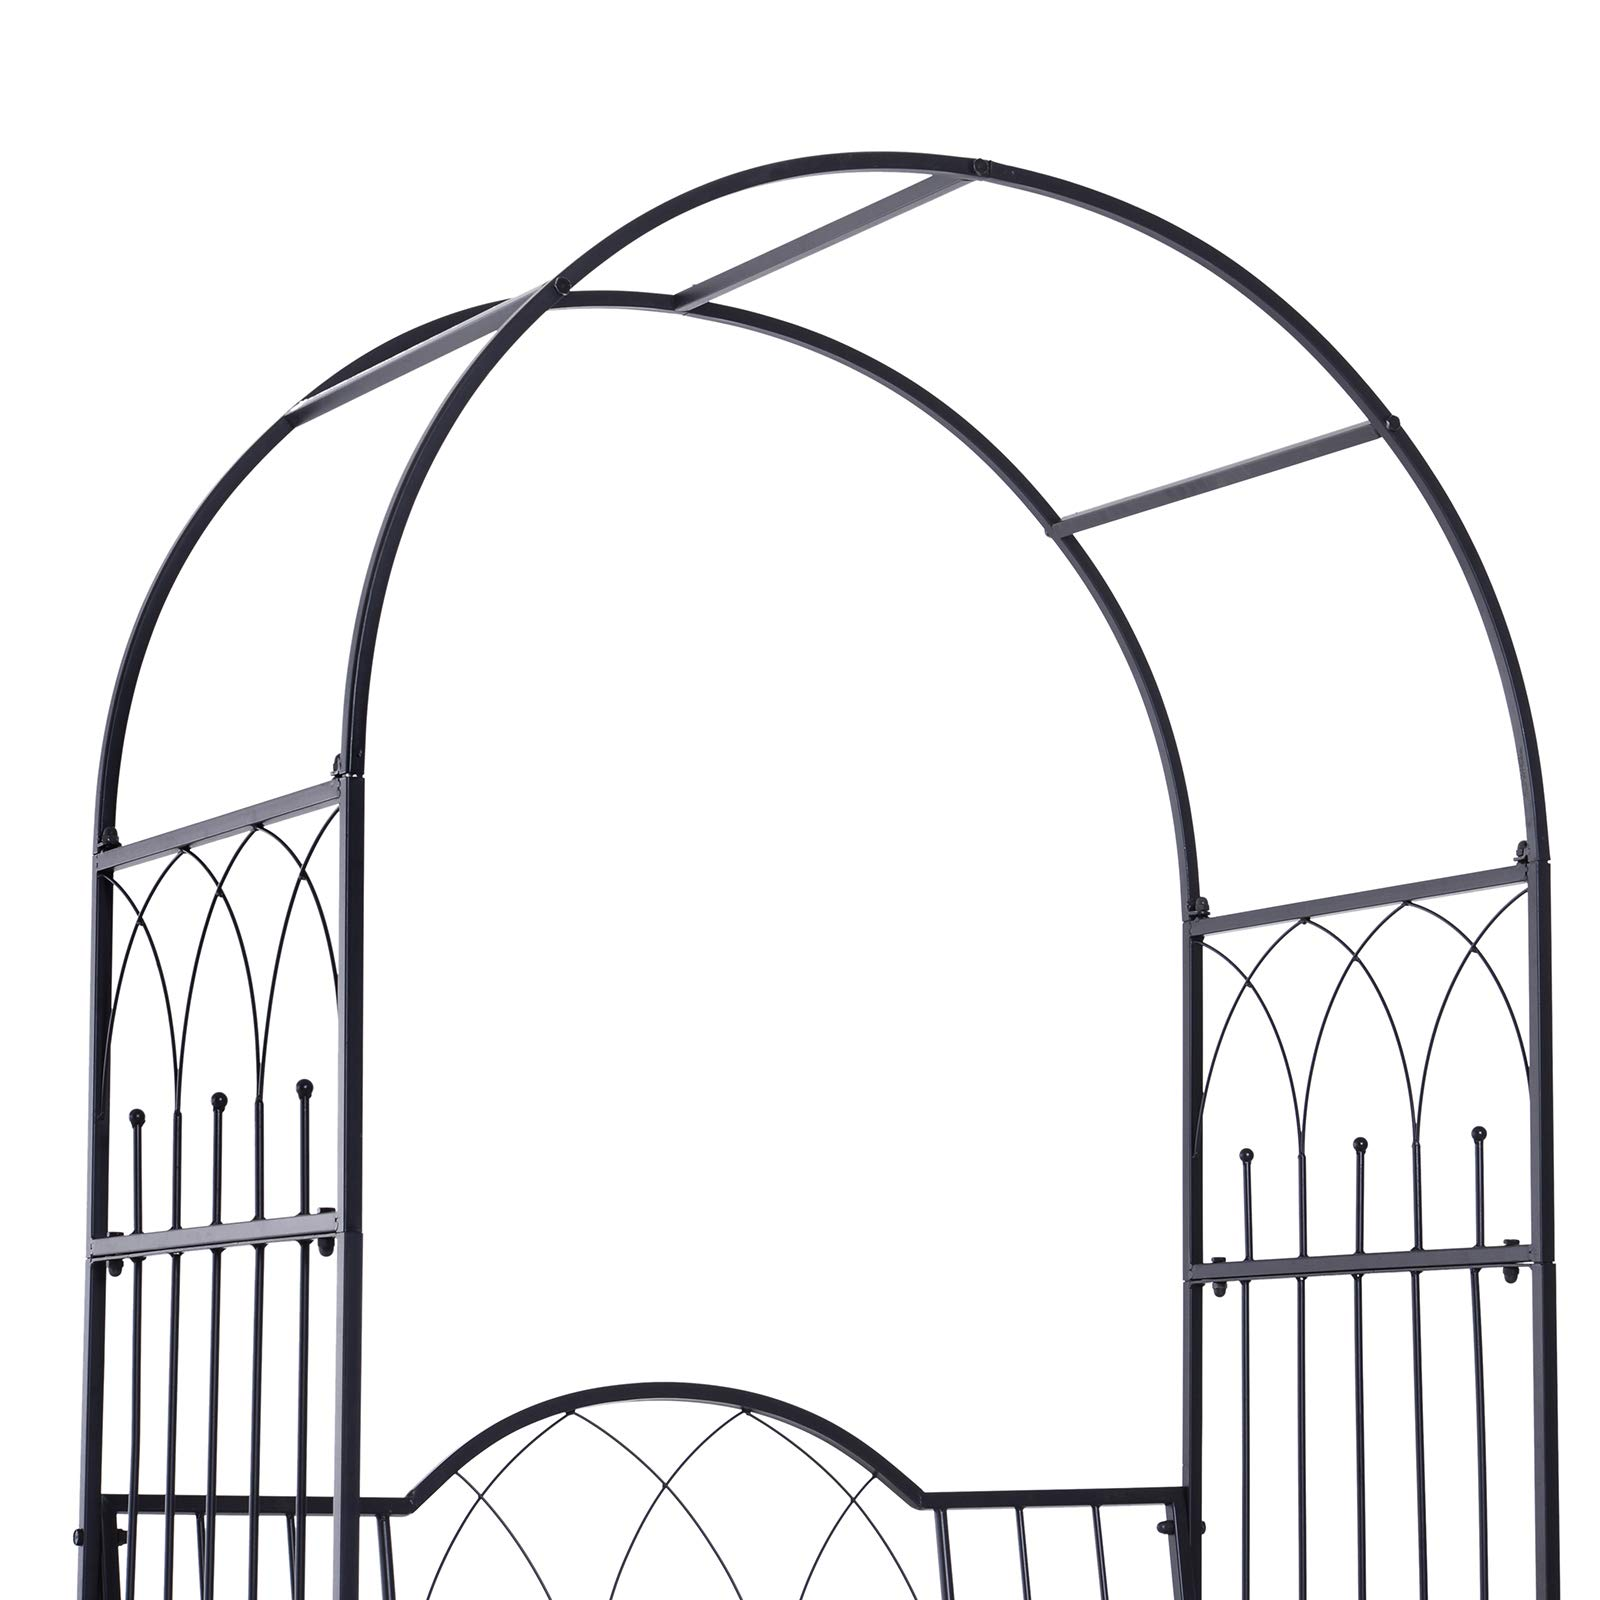 Outsunny Outdoor Garden Arbor Arch Steel Metal with Bench Seat - Black by Outsunny (Image #5)